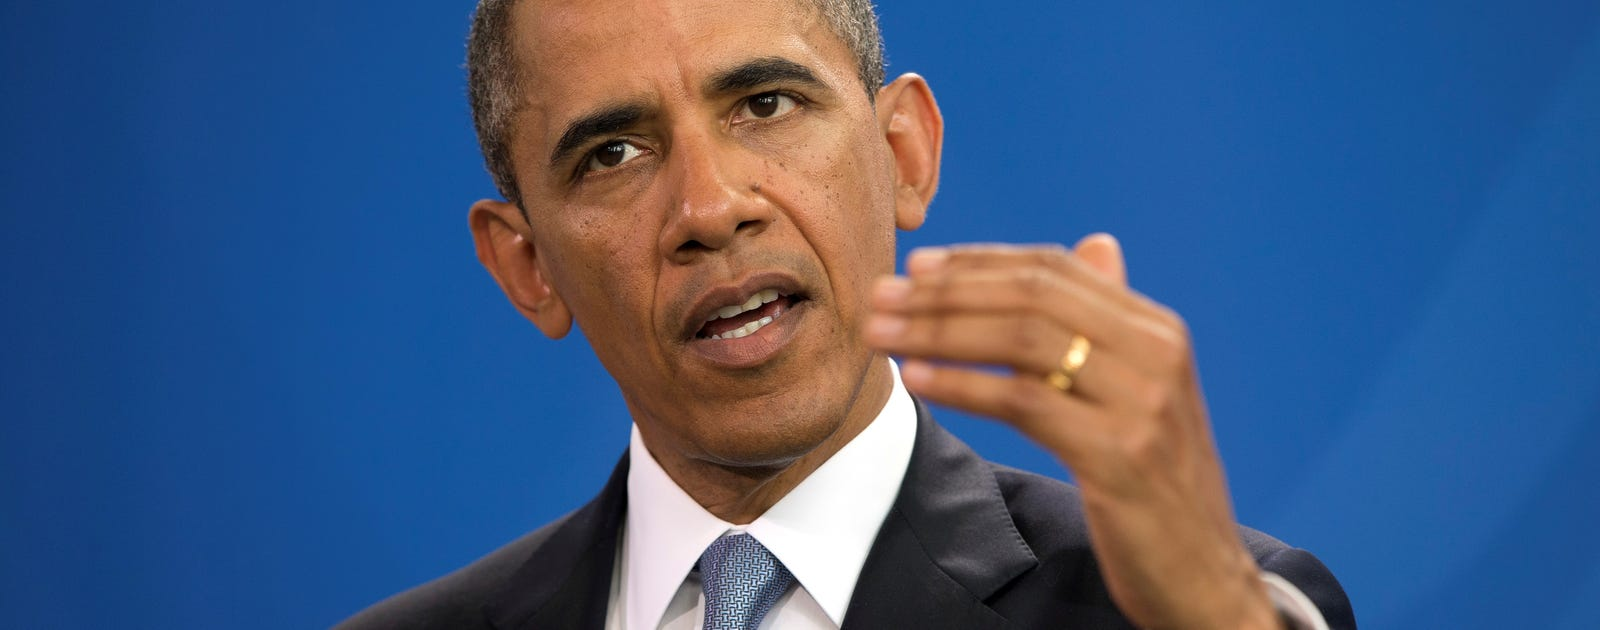 Obama 'disappointed' in court's voting rights decision